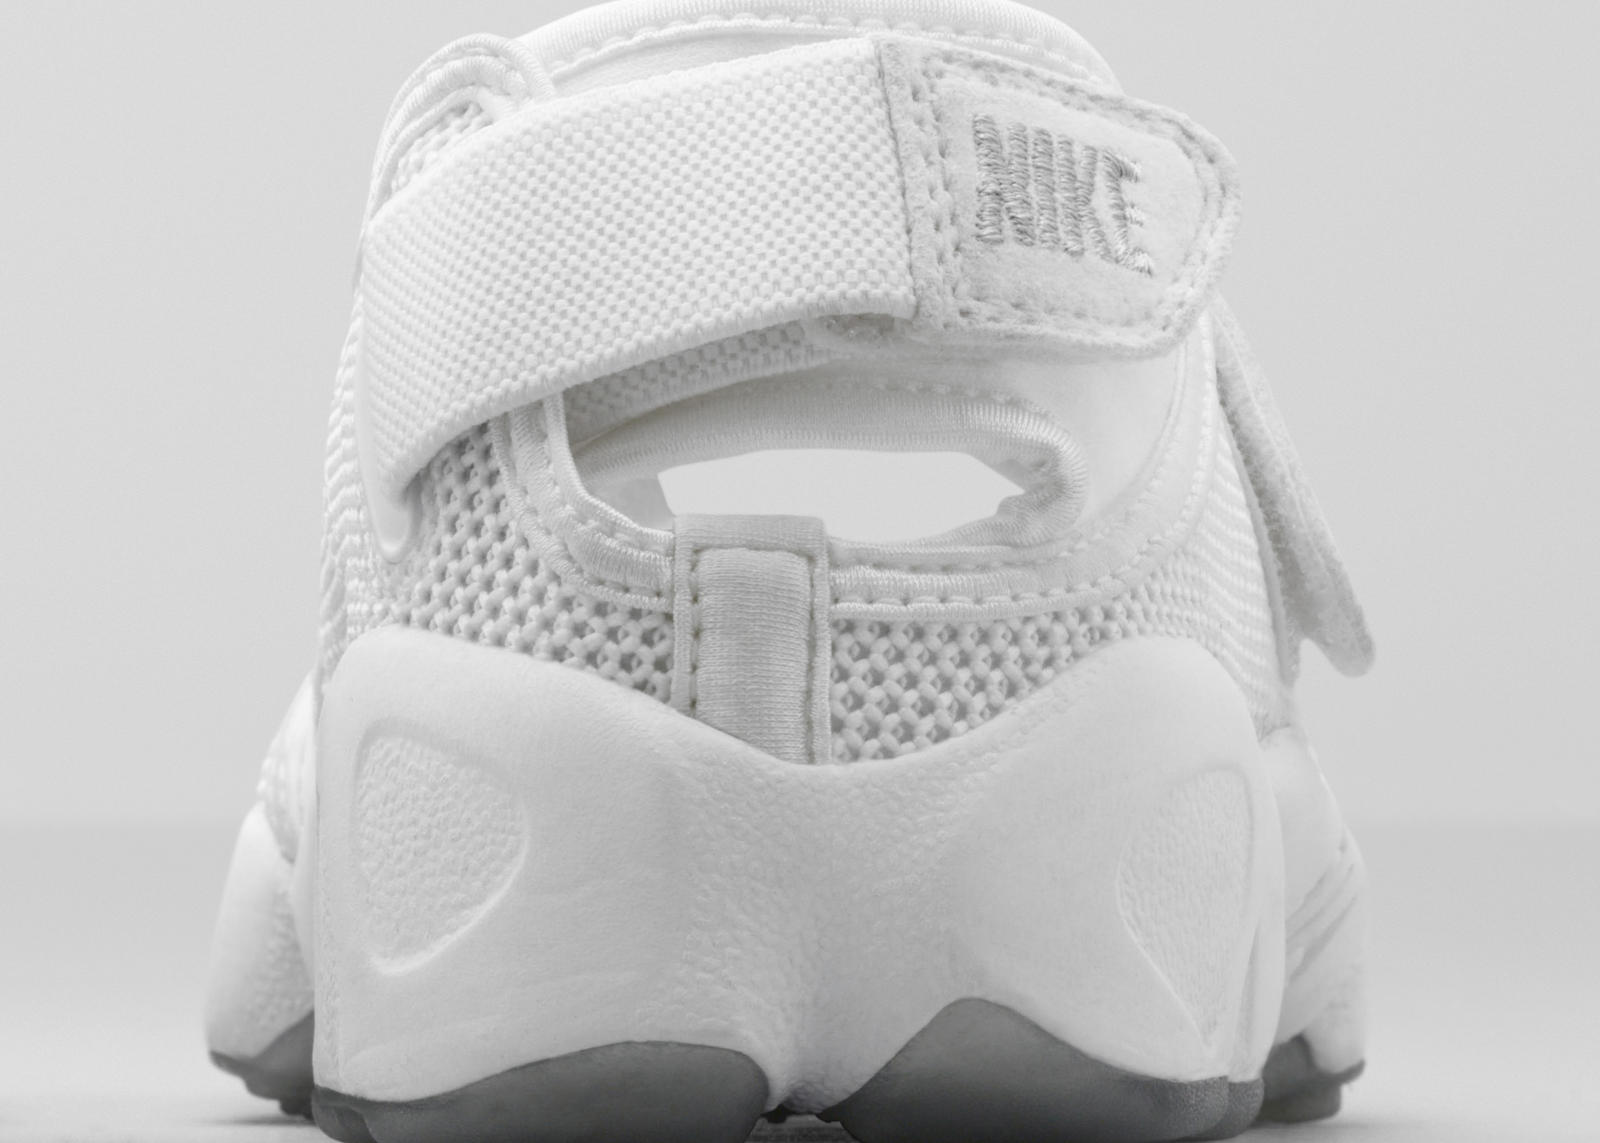 Su15 nsw air rift w ftwr detail 04 rectangle 1600